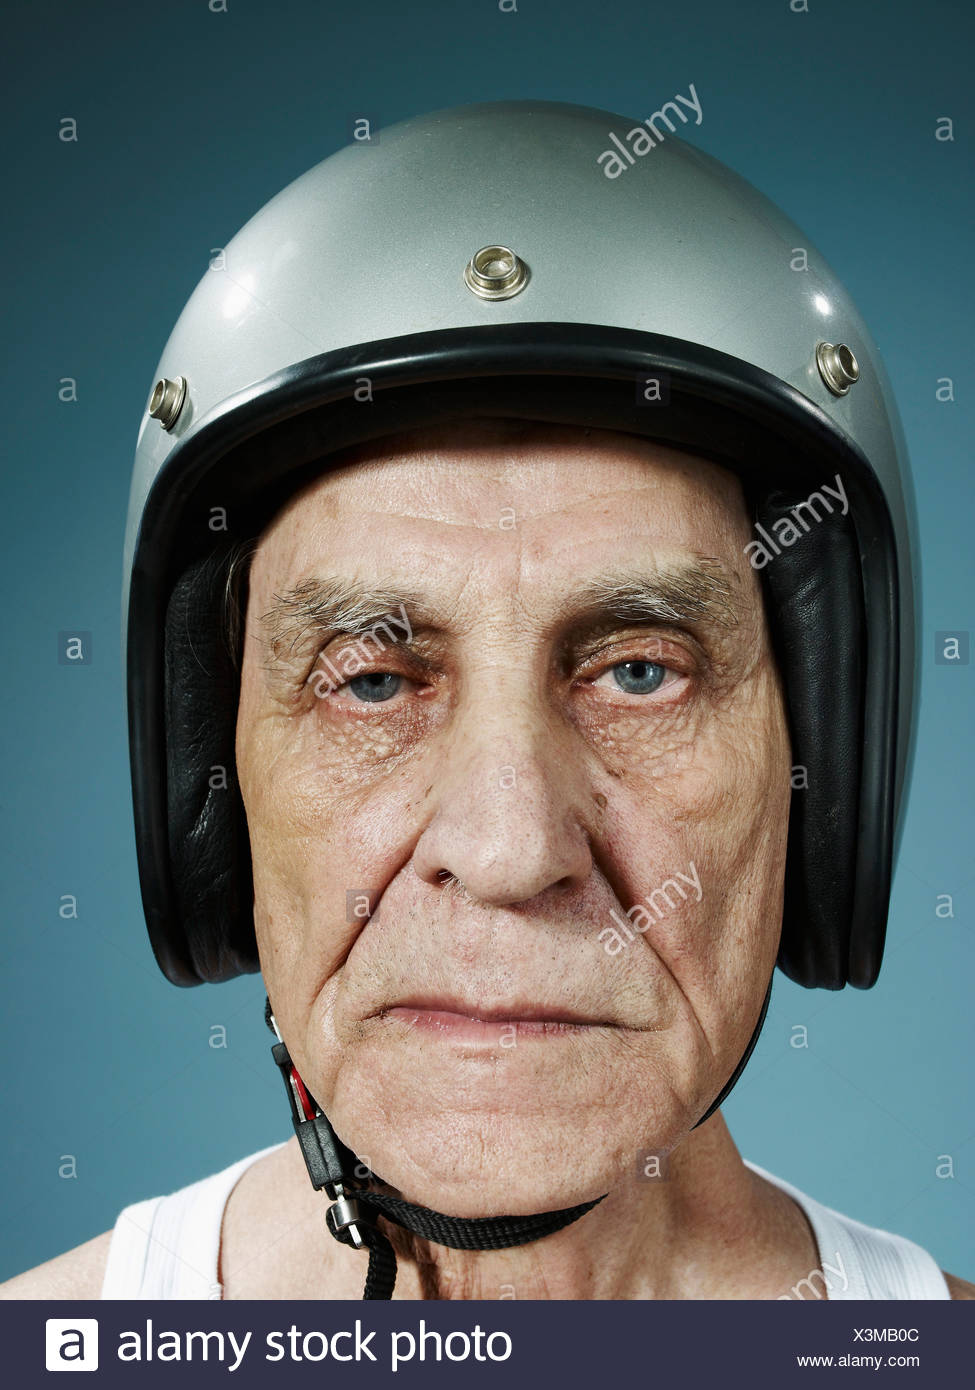 A headshot of a frowning senior man wearing a crash helmet - Stock Image